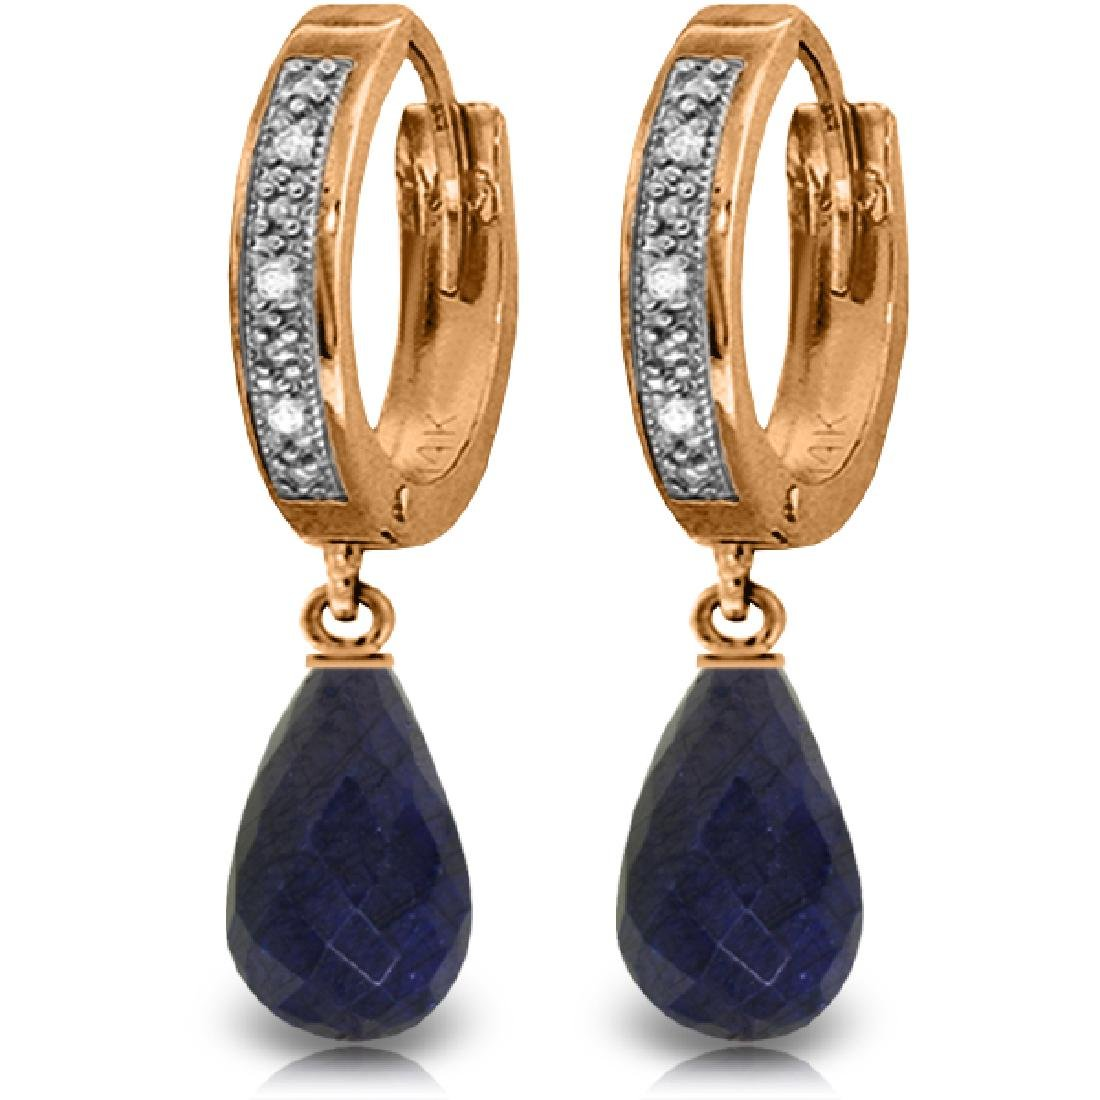 Genuine 6.64 ctw Sapphire & Diamond Earrings Jewelry